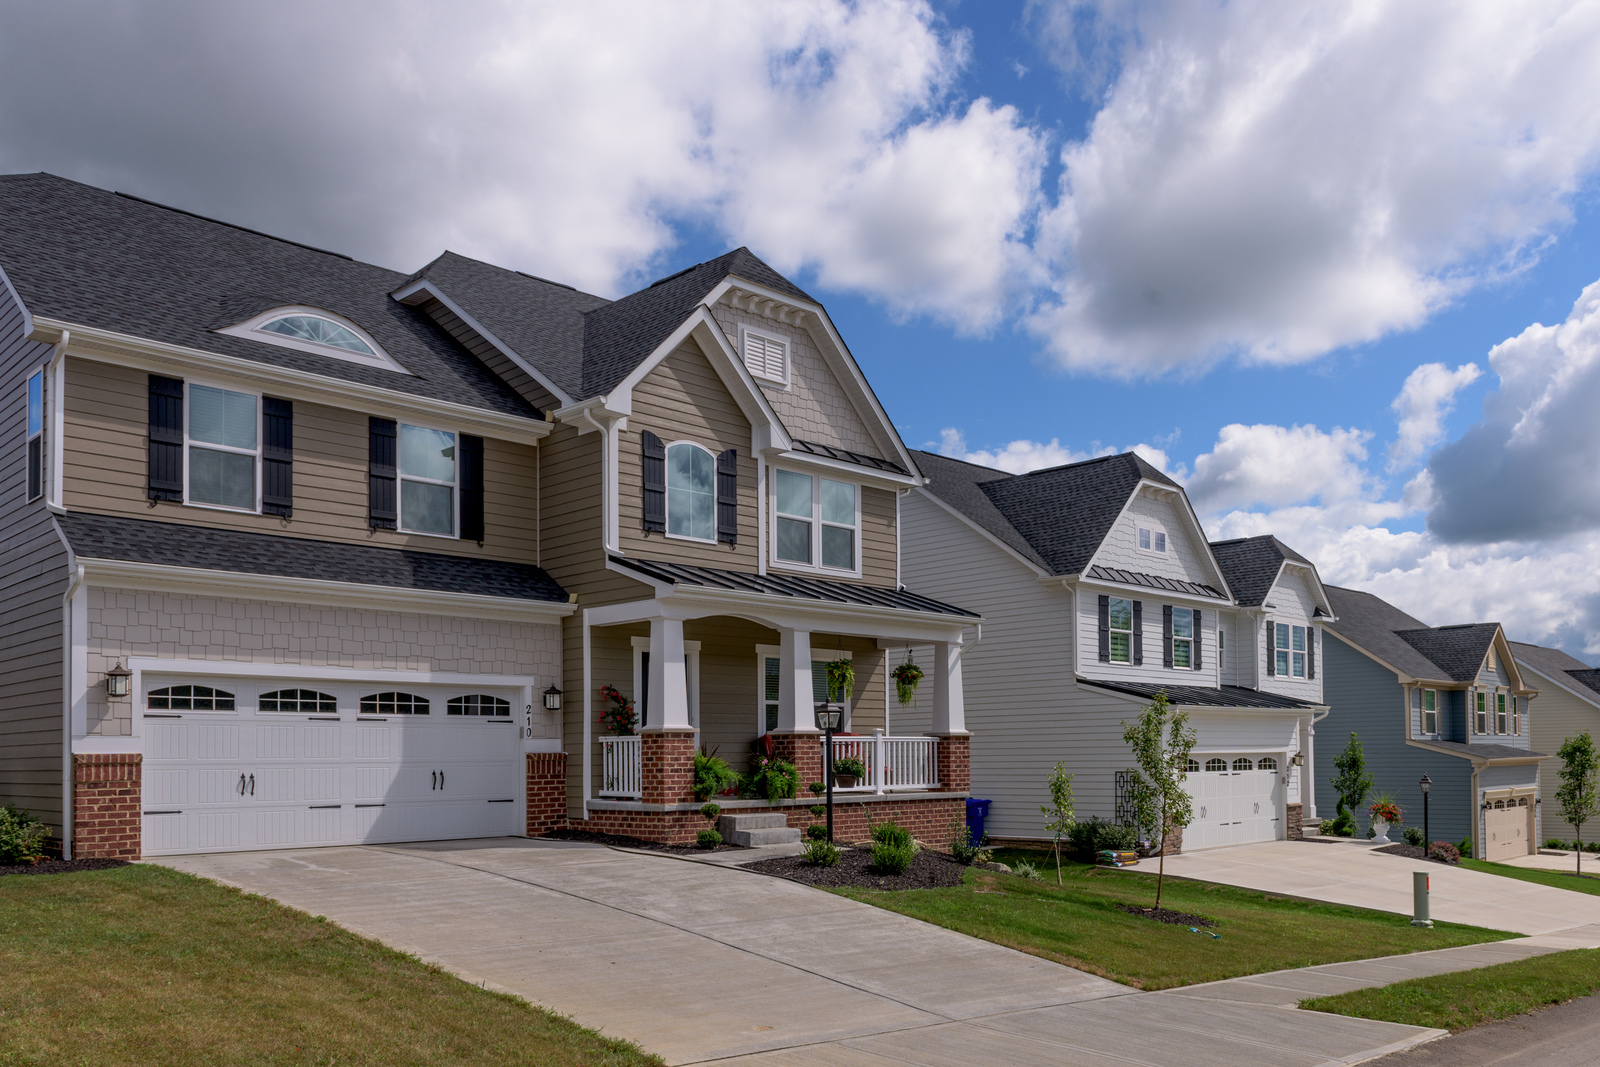 new homes for sale at dove chase in lexington sc within